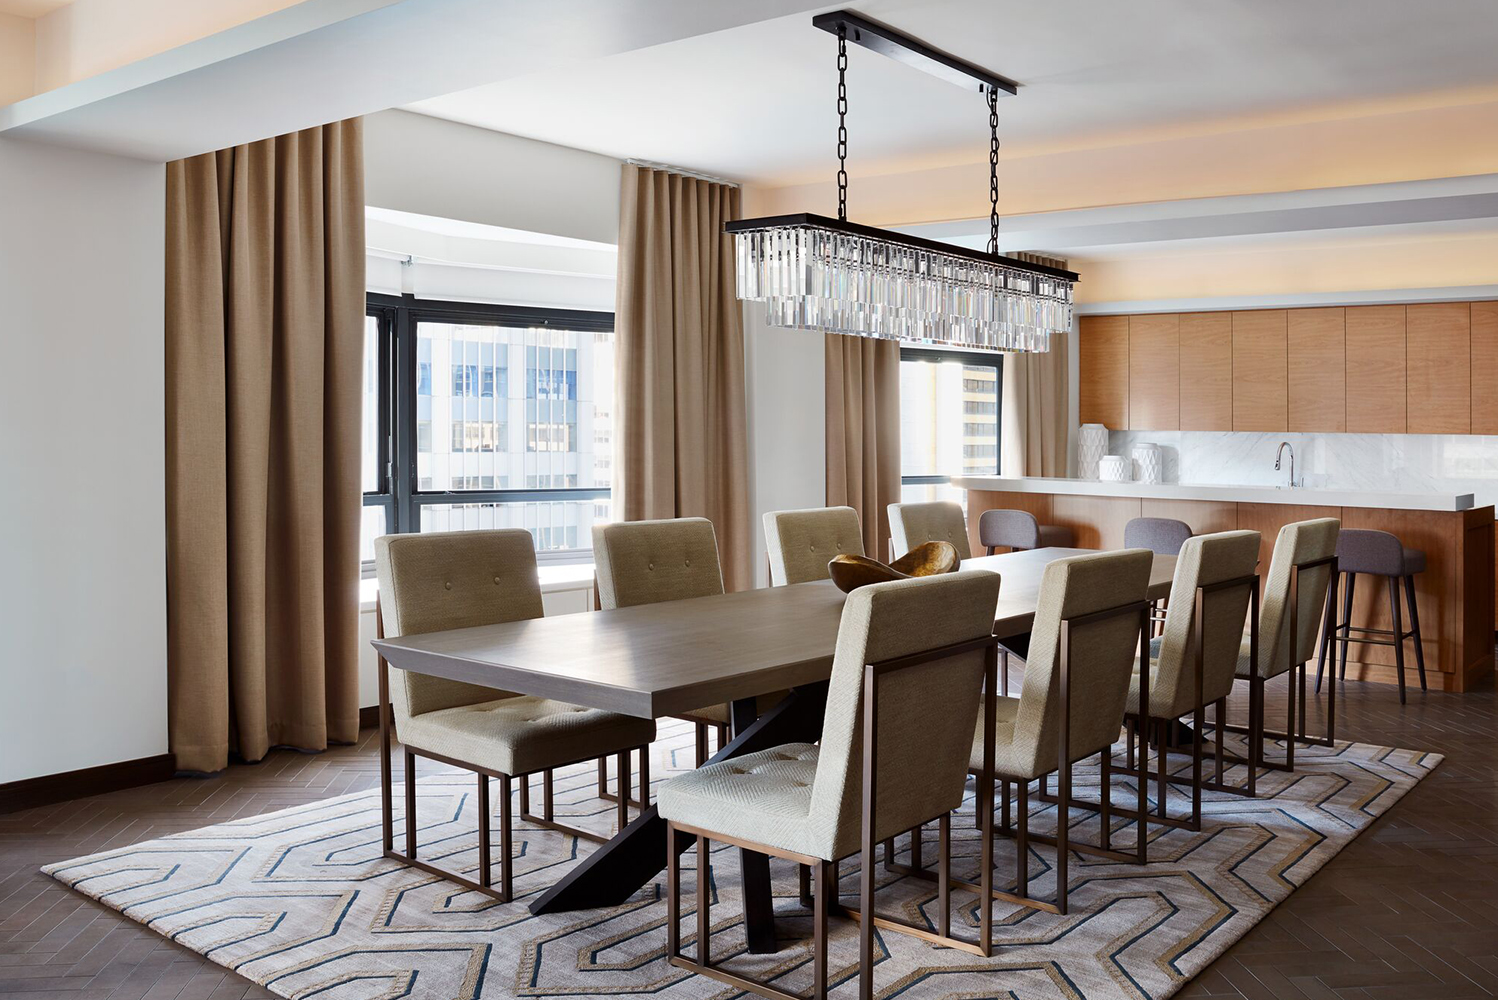 Each suite has views of Central Park as their backdrop.